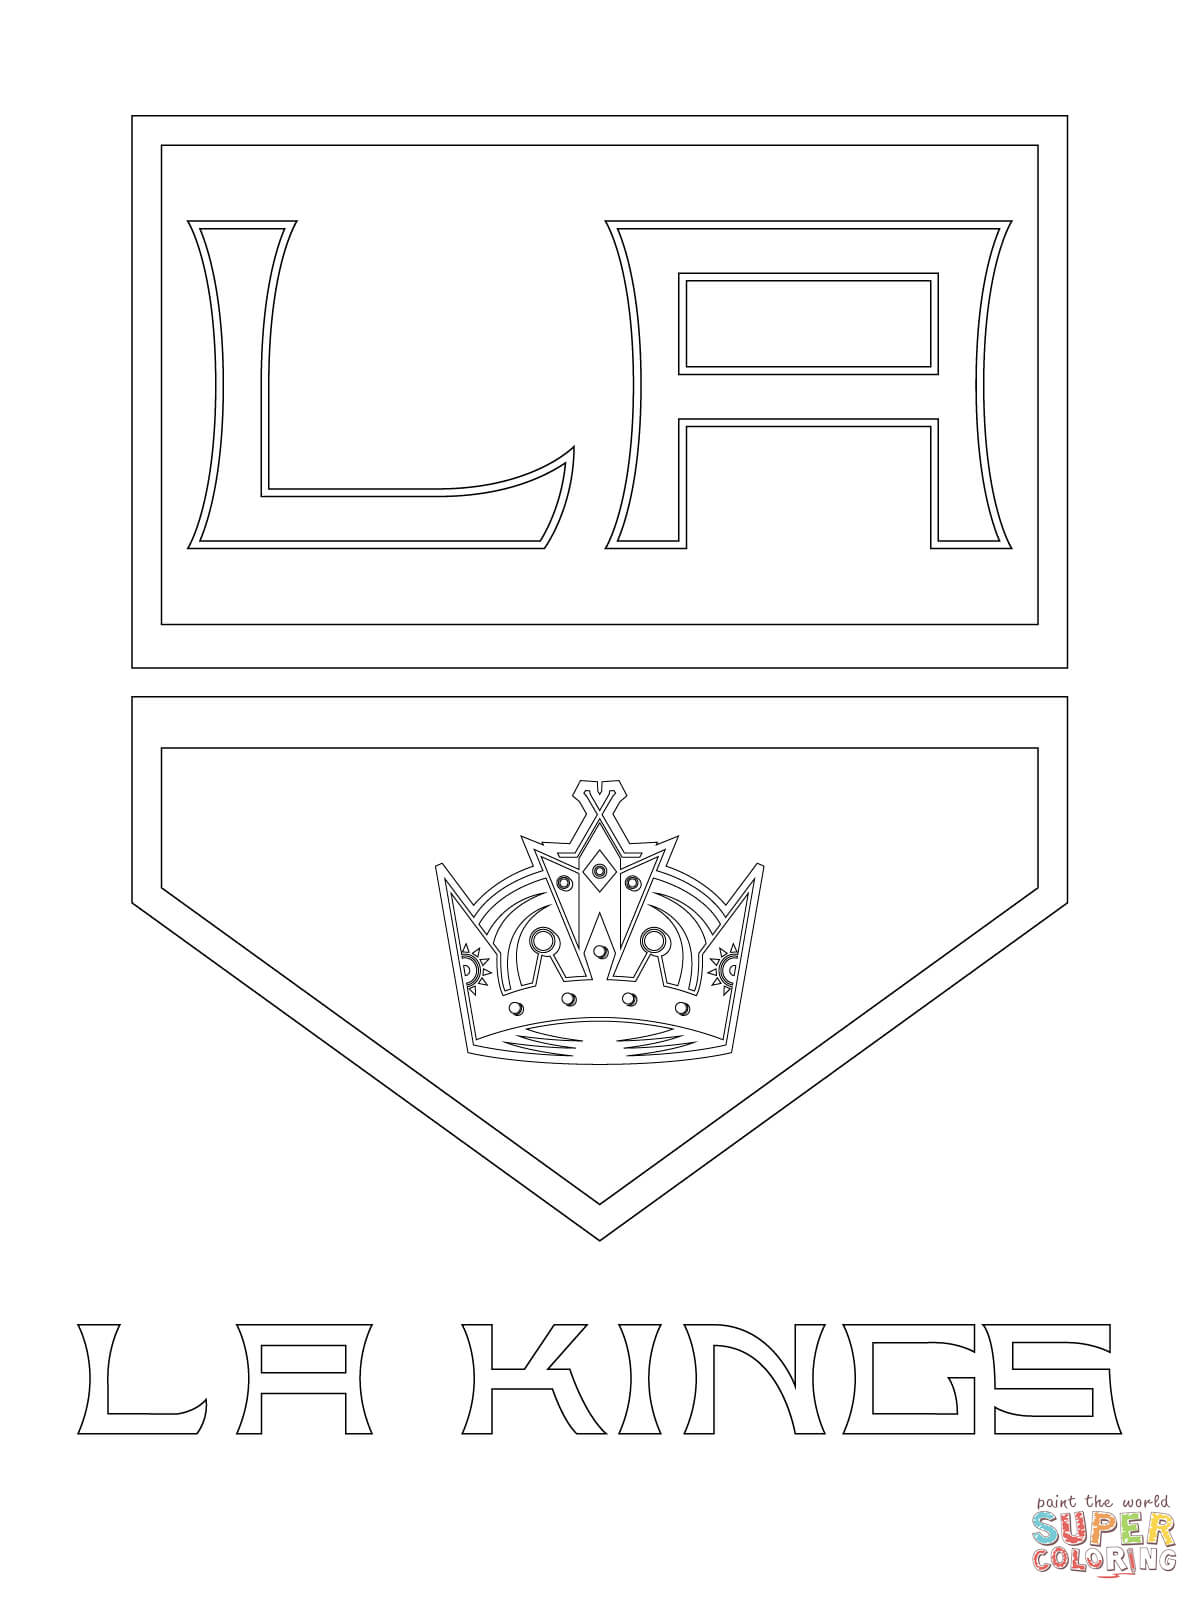 los angeles kings logo coloring page free printable coloring pages